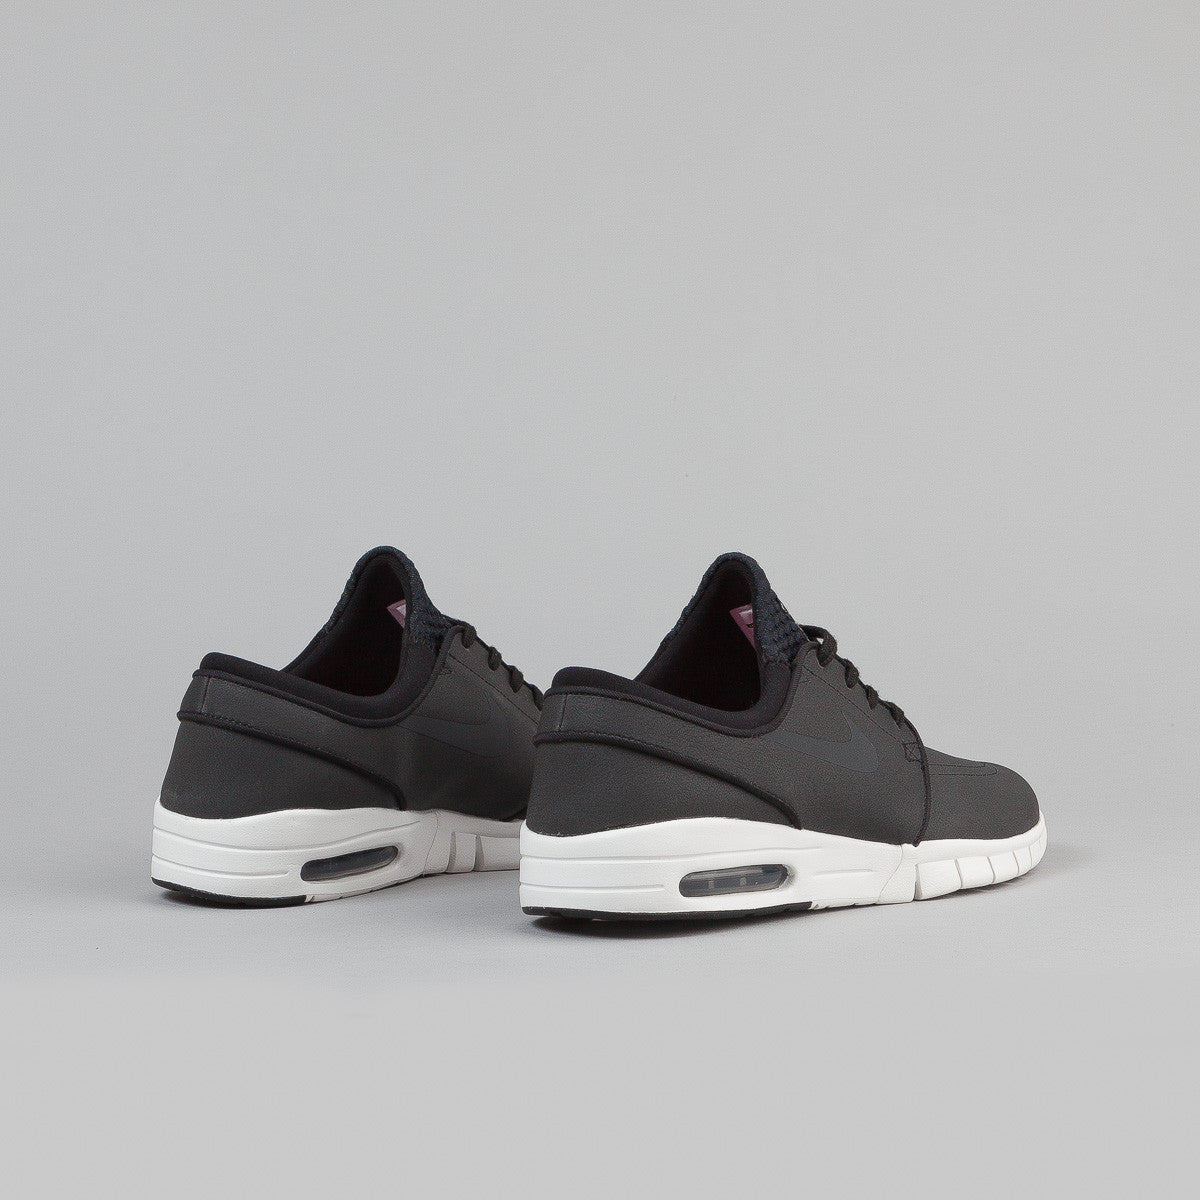 Nike SB Stefan Janoski Max Leather Shoes - Black / Anthracite - Summit White - Hyper Pink